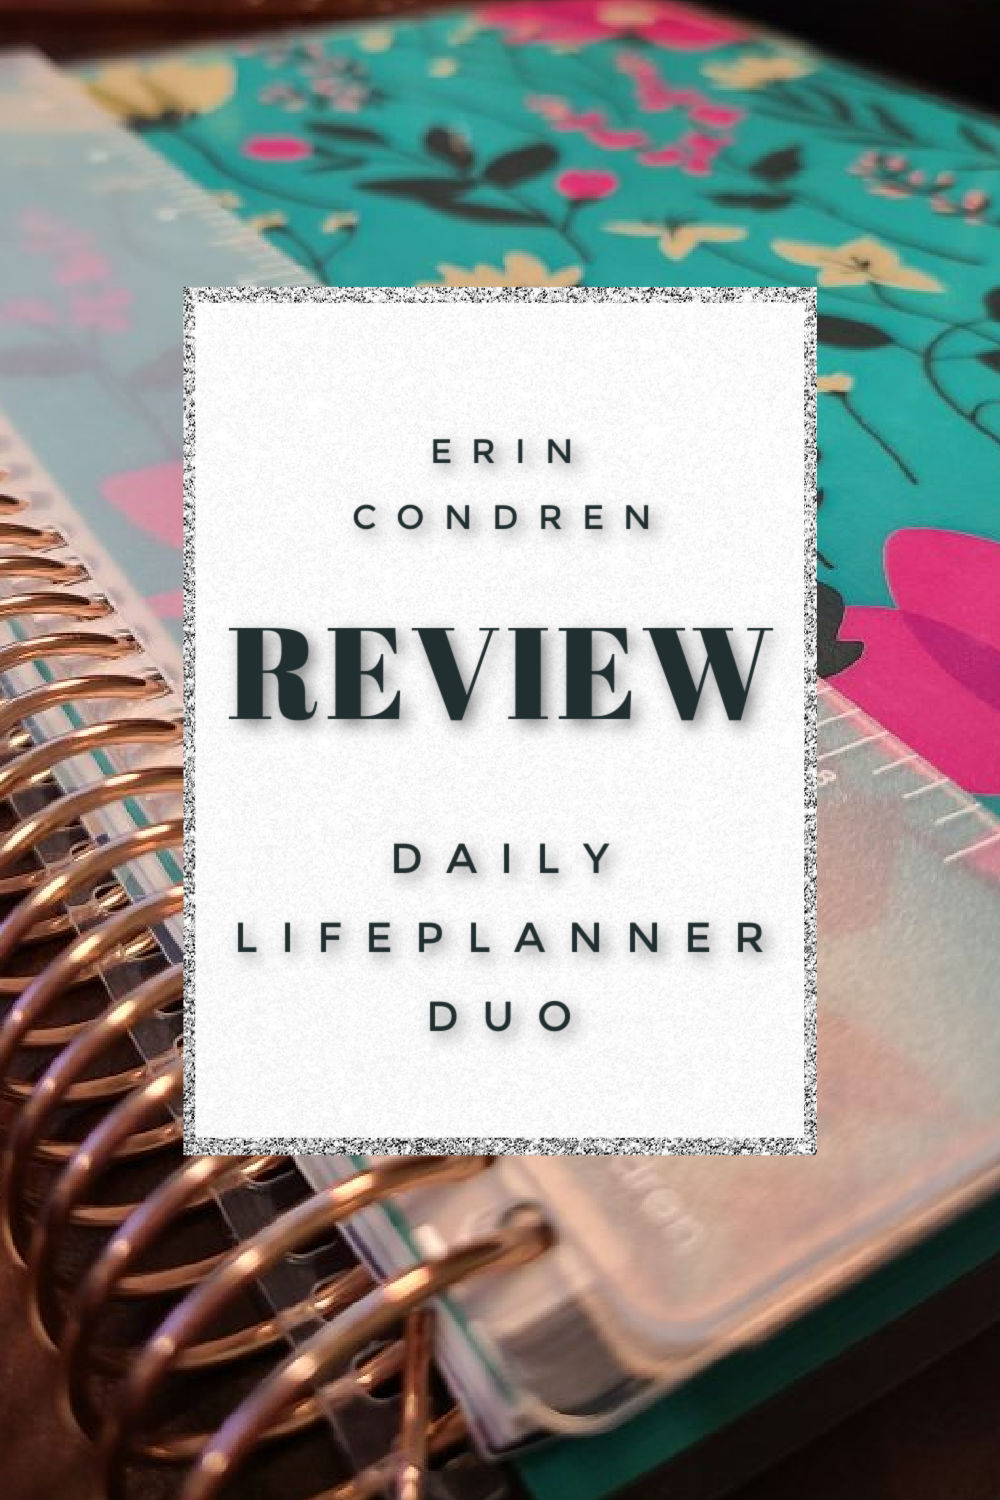 Review of the Erin Condren Daily Lifeplanner Duo